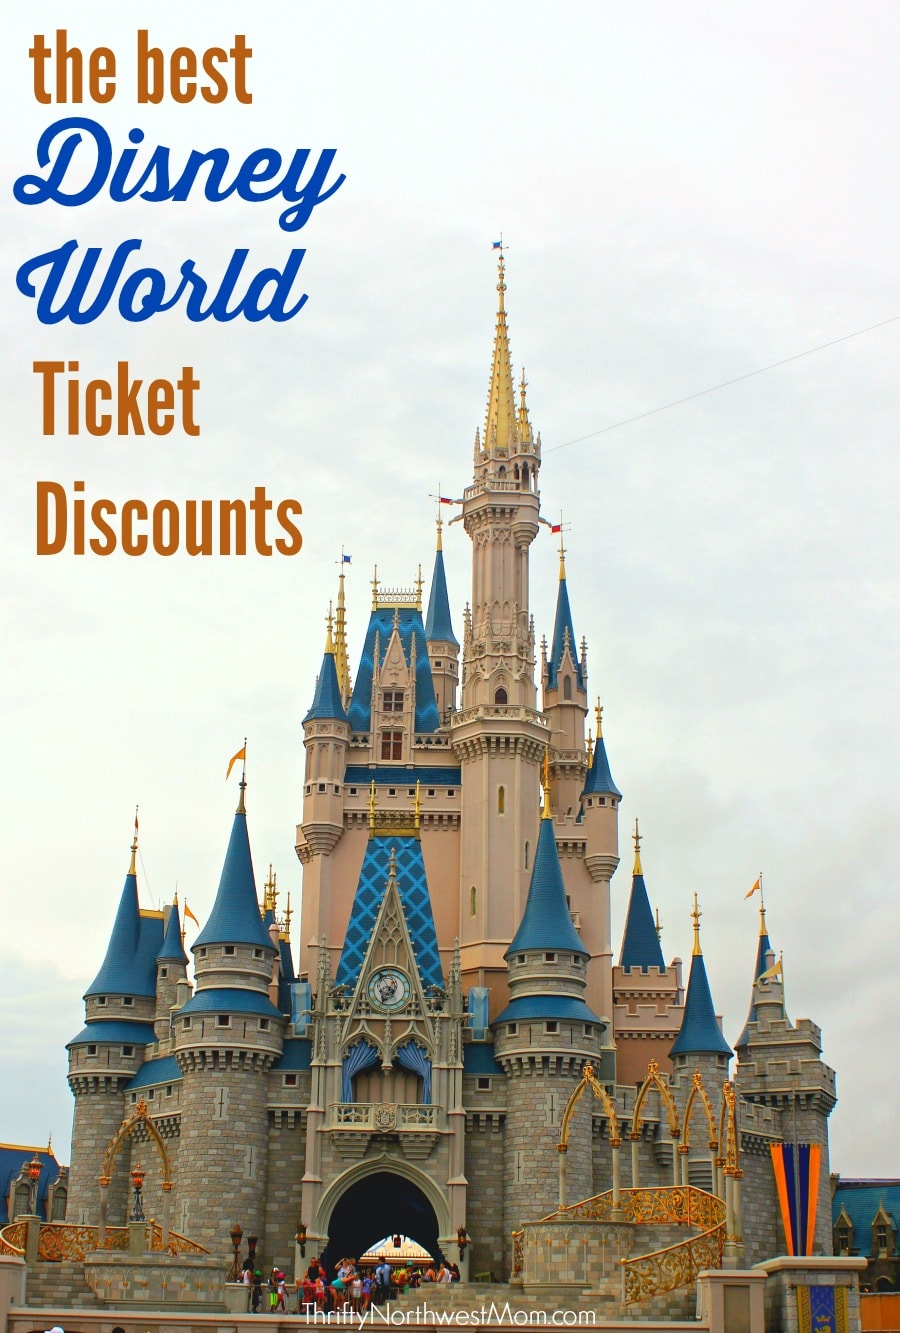 Disney World Ticket Discounts and ways to save on Walt Disney World Tickets